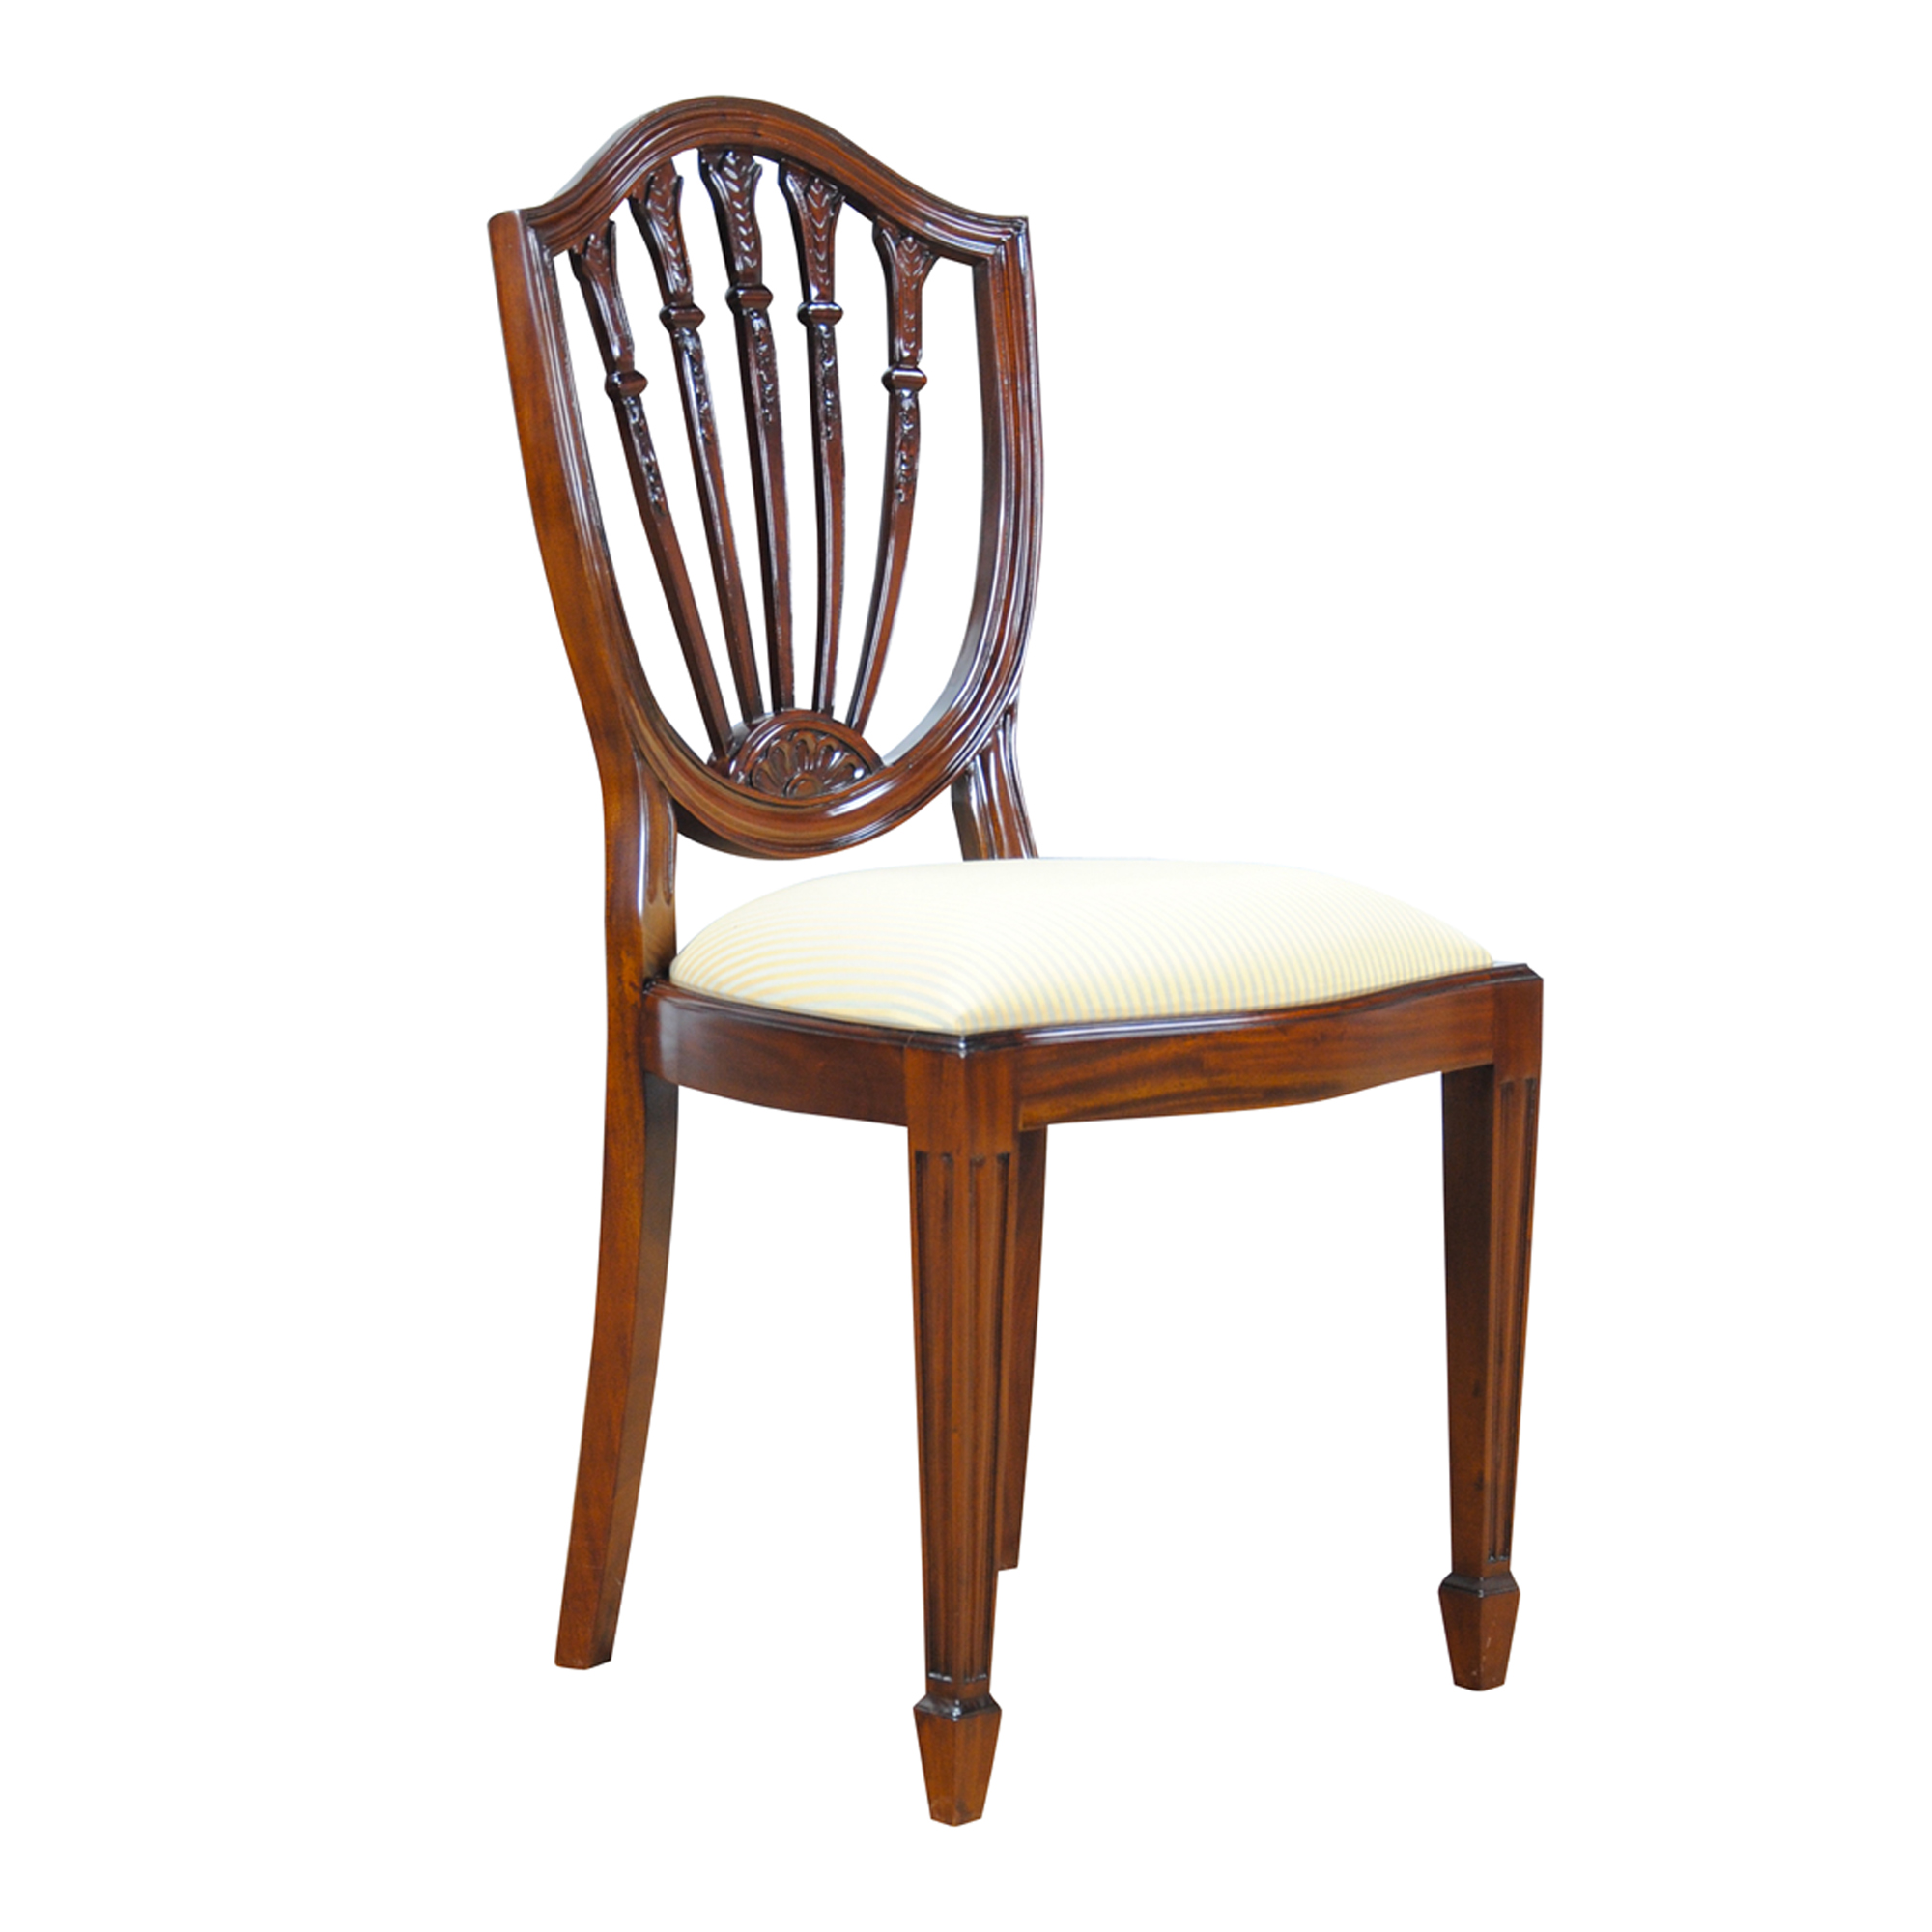 Shield Back Dining Room Chairs: Shield Back Side Chair, Niagara Furniture, Solid Mahogany